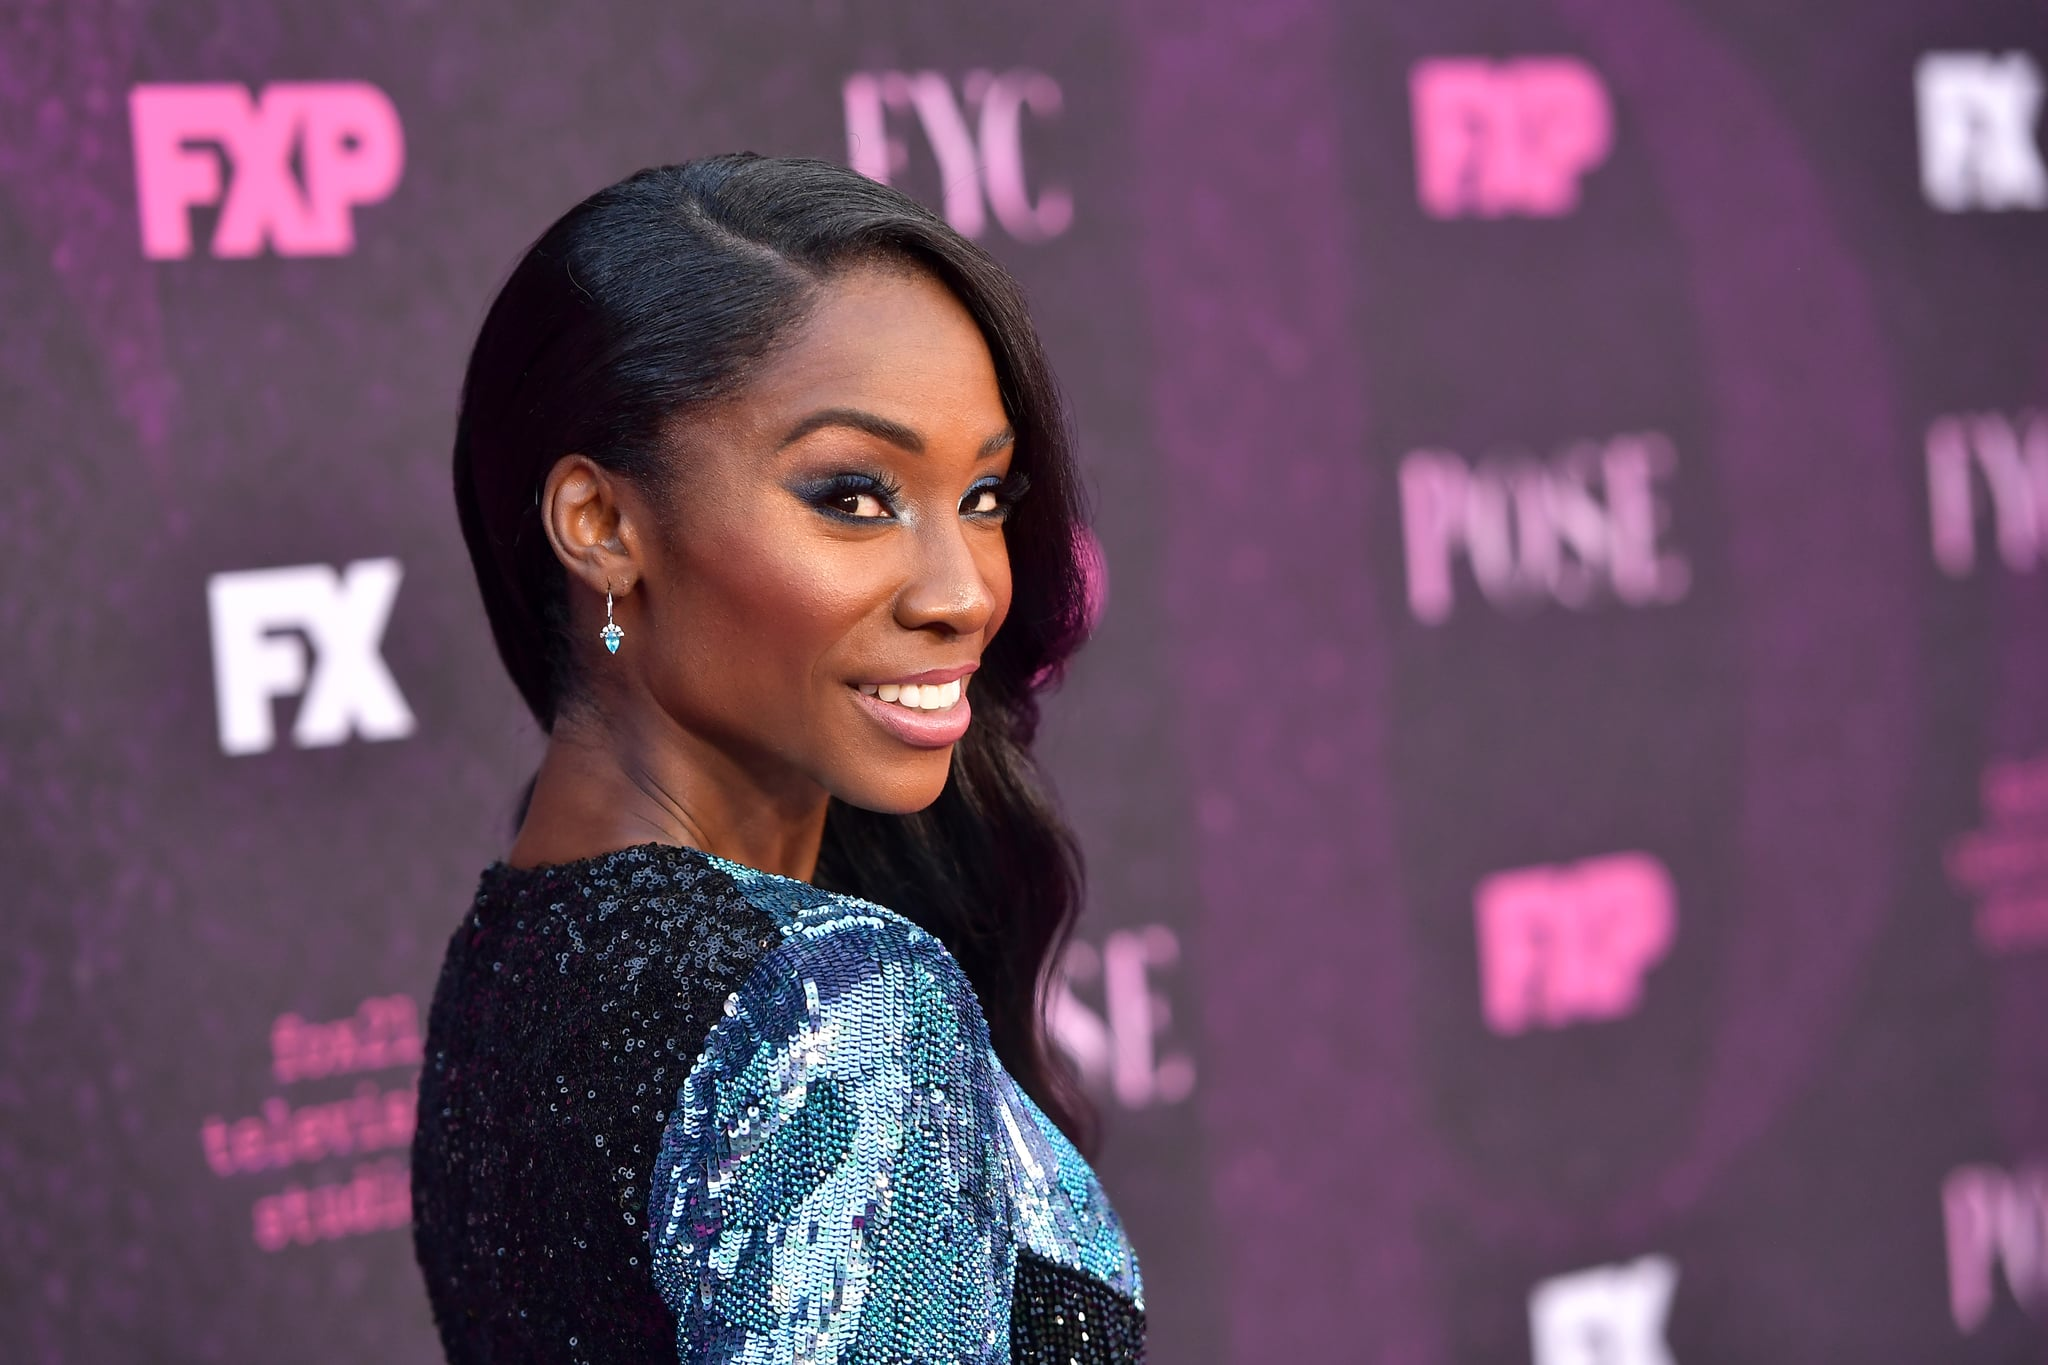 WEST HOLLYWOOD, CALIFORNIA - AUGUST 09: Angelica Ross attends the red carpet event for FX's